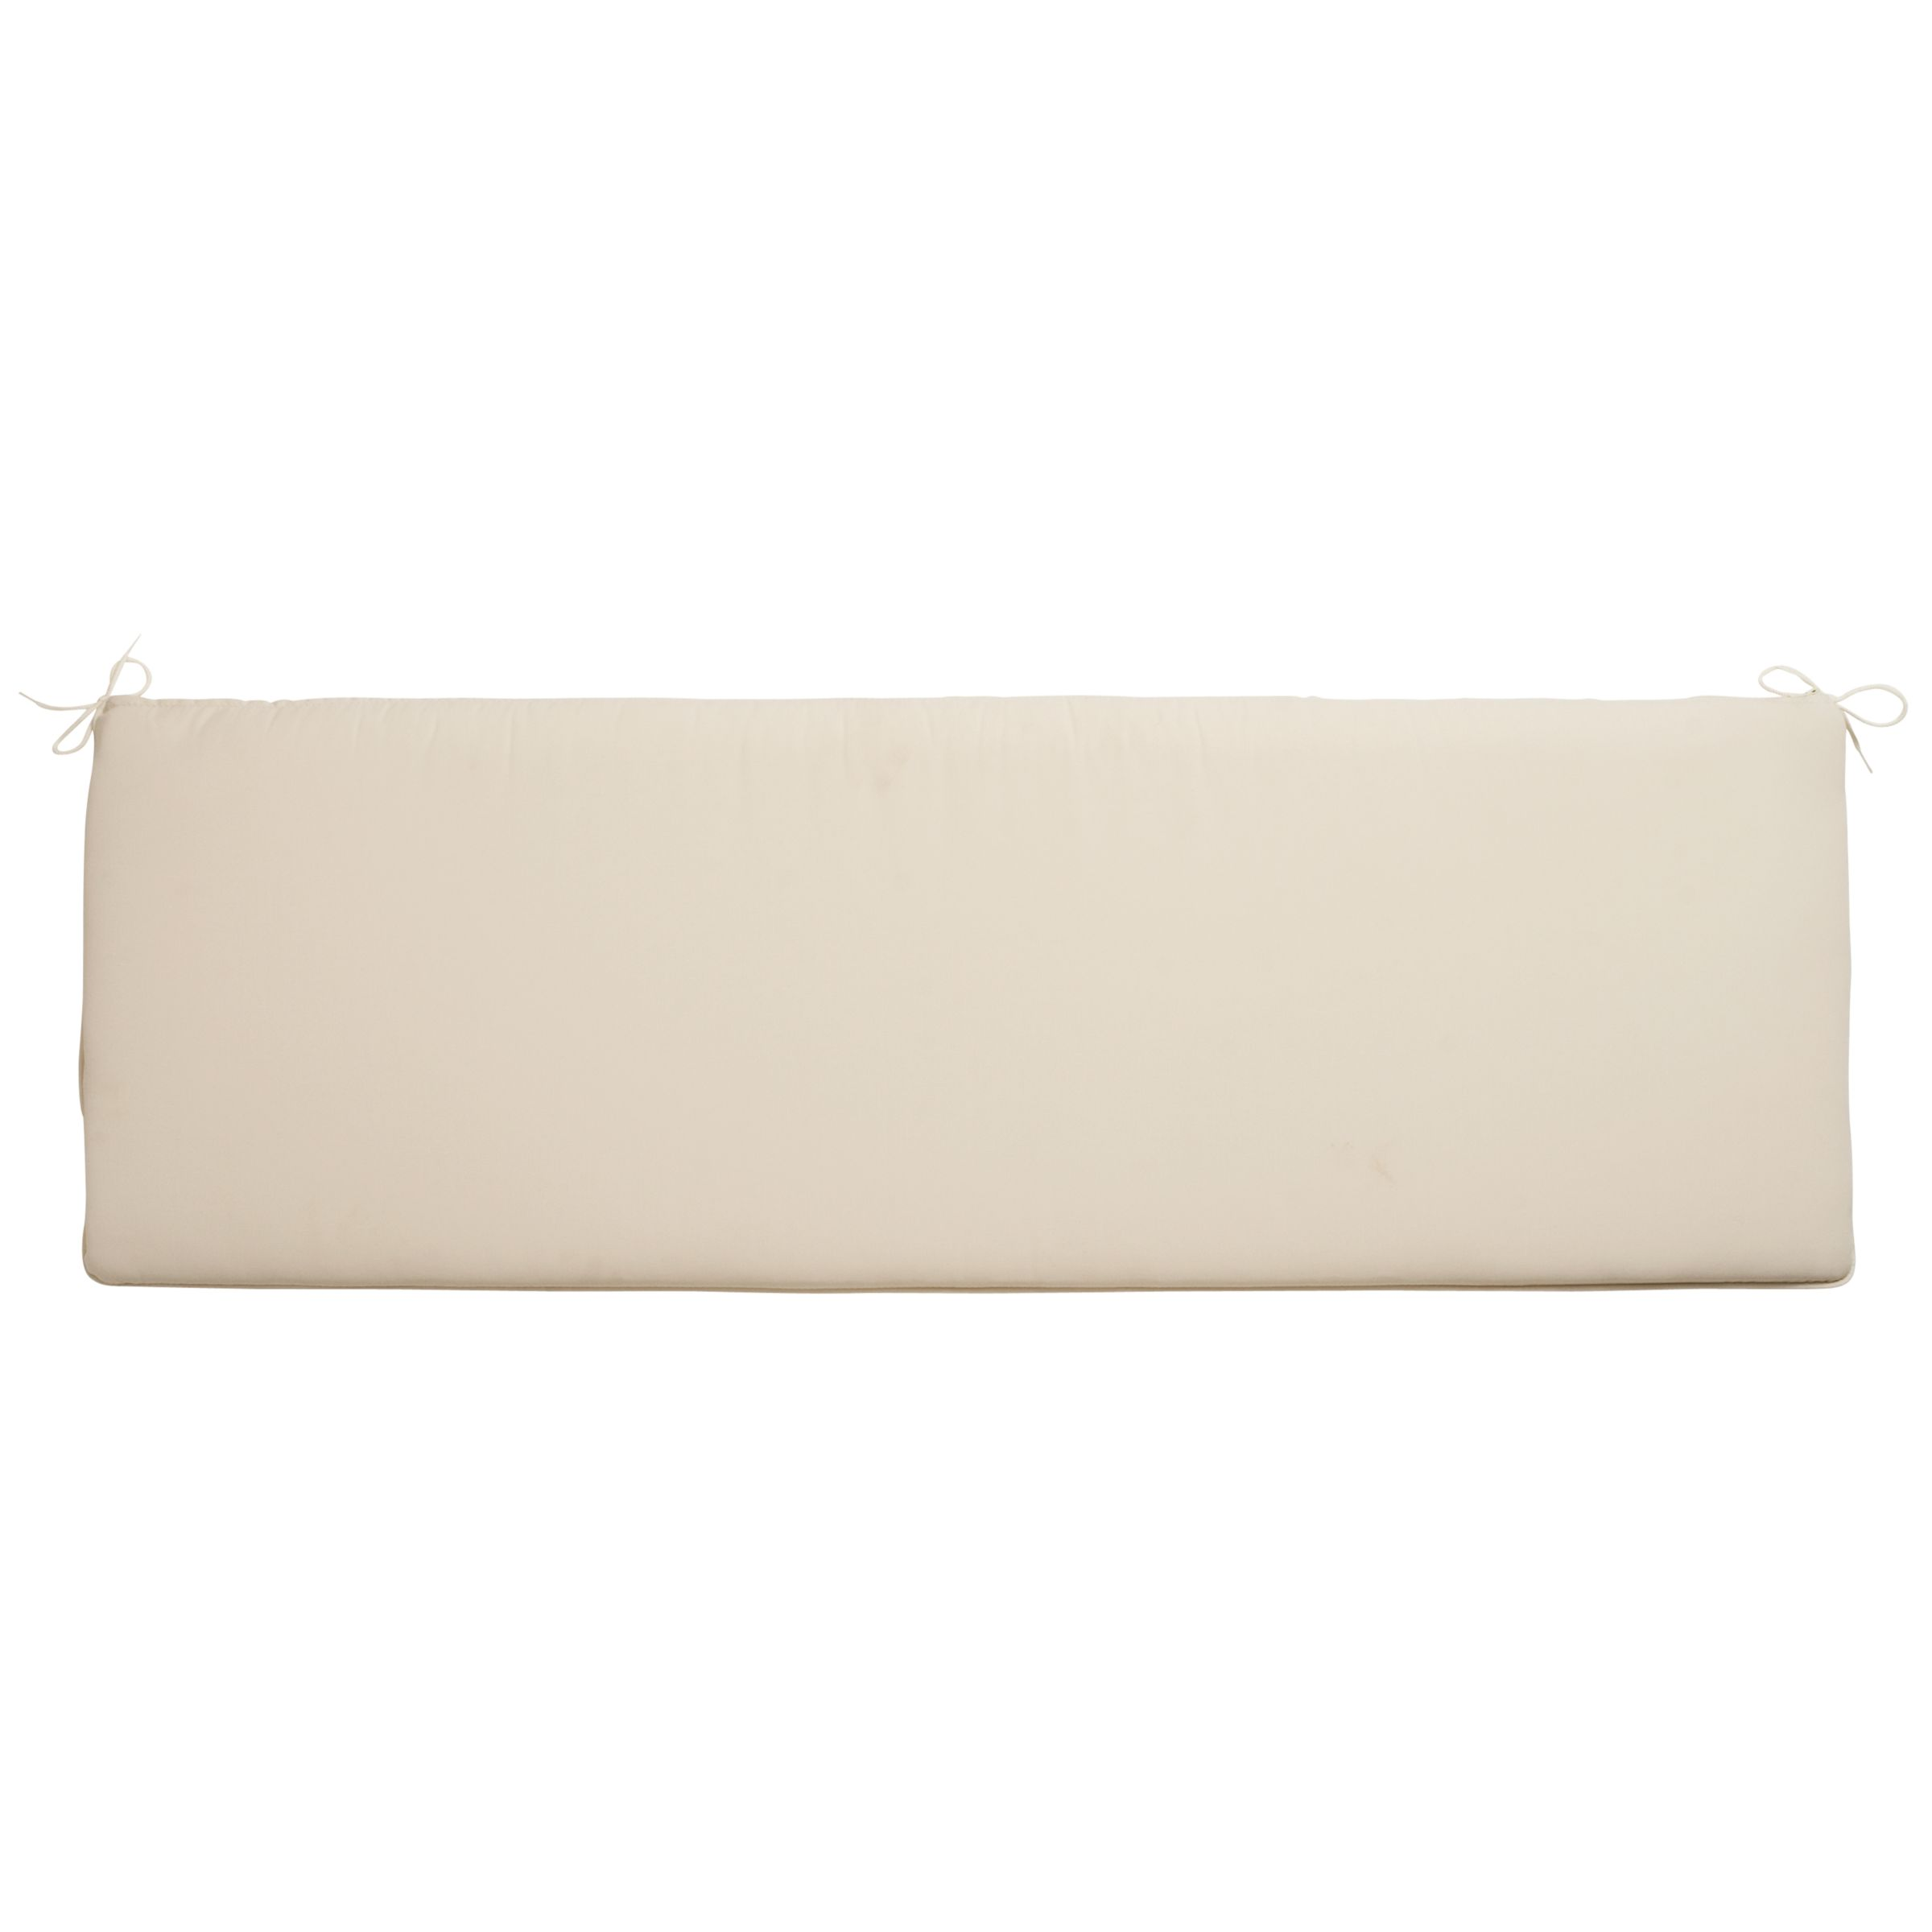 John Lewis Ripley Bench Cushion, Natural